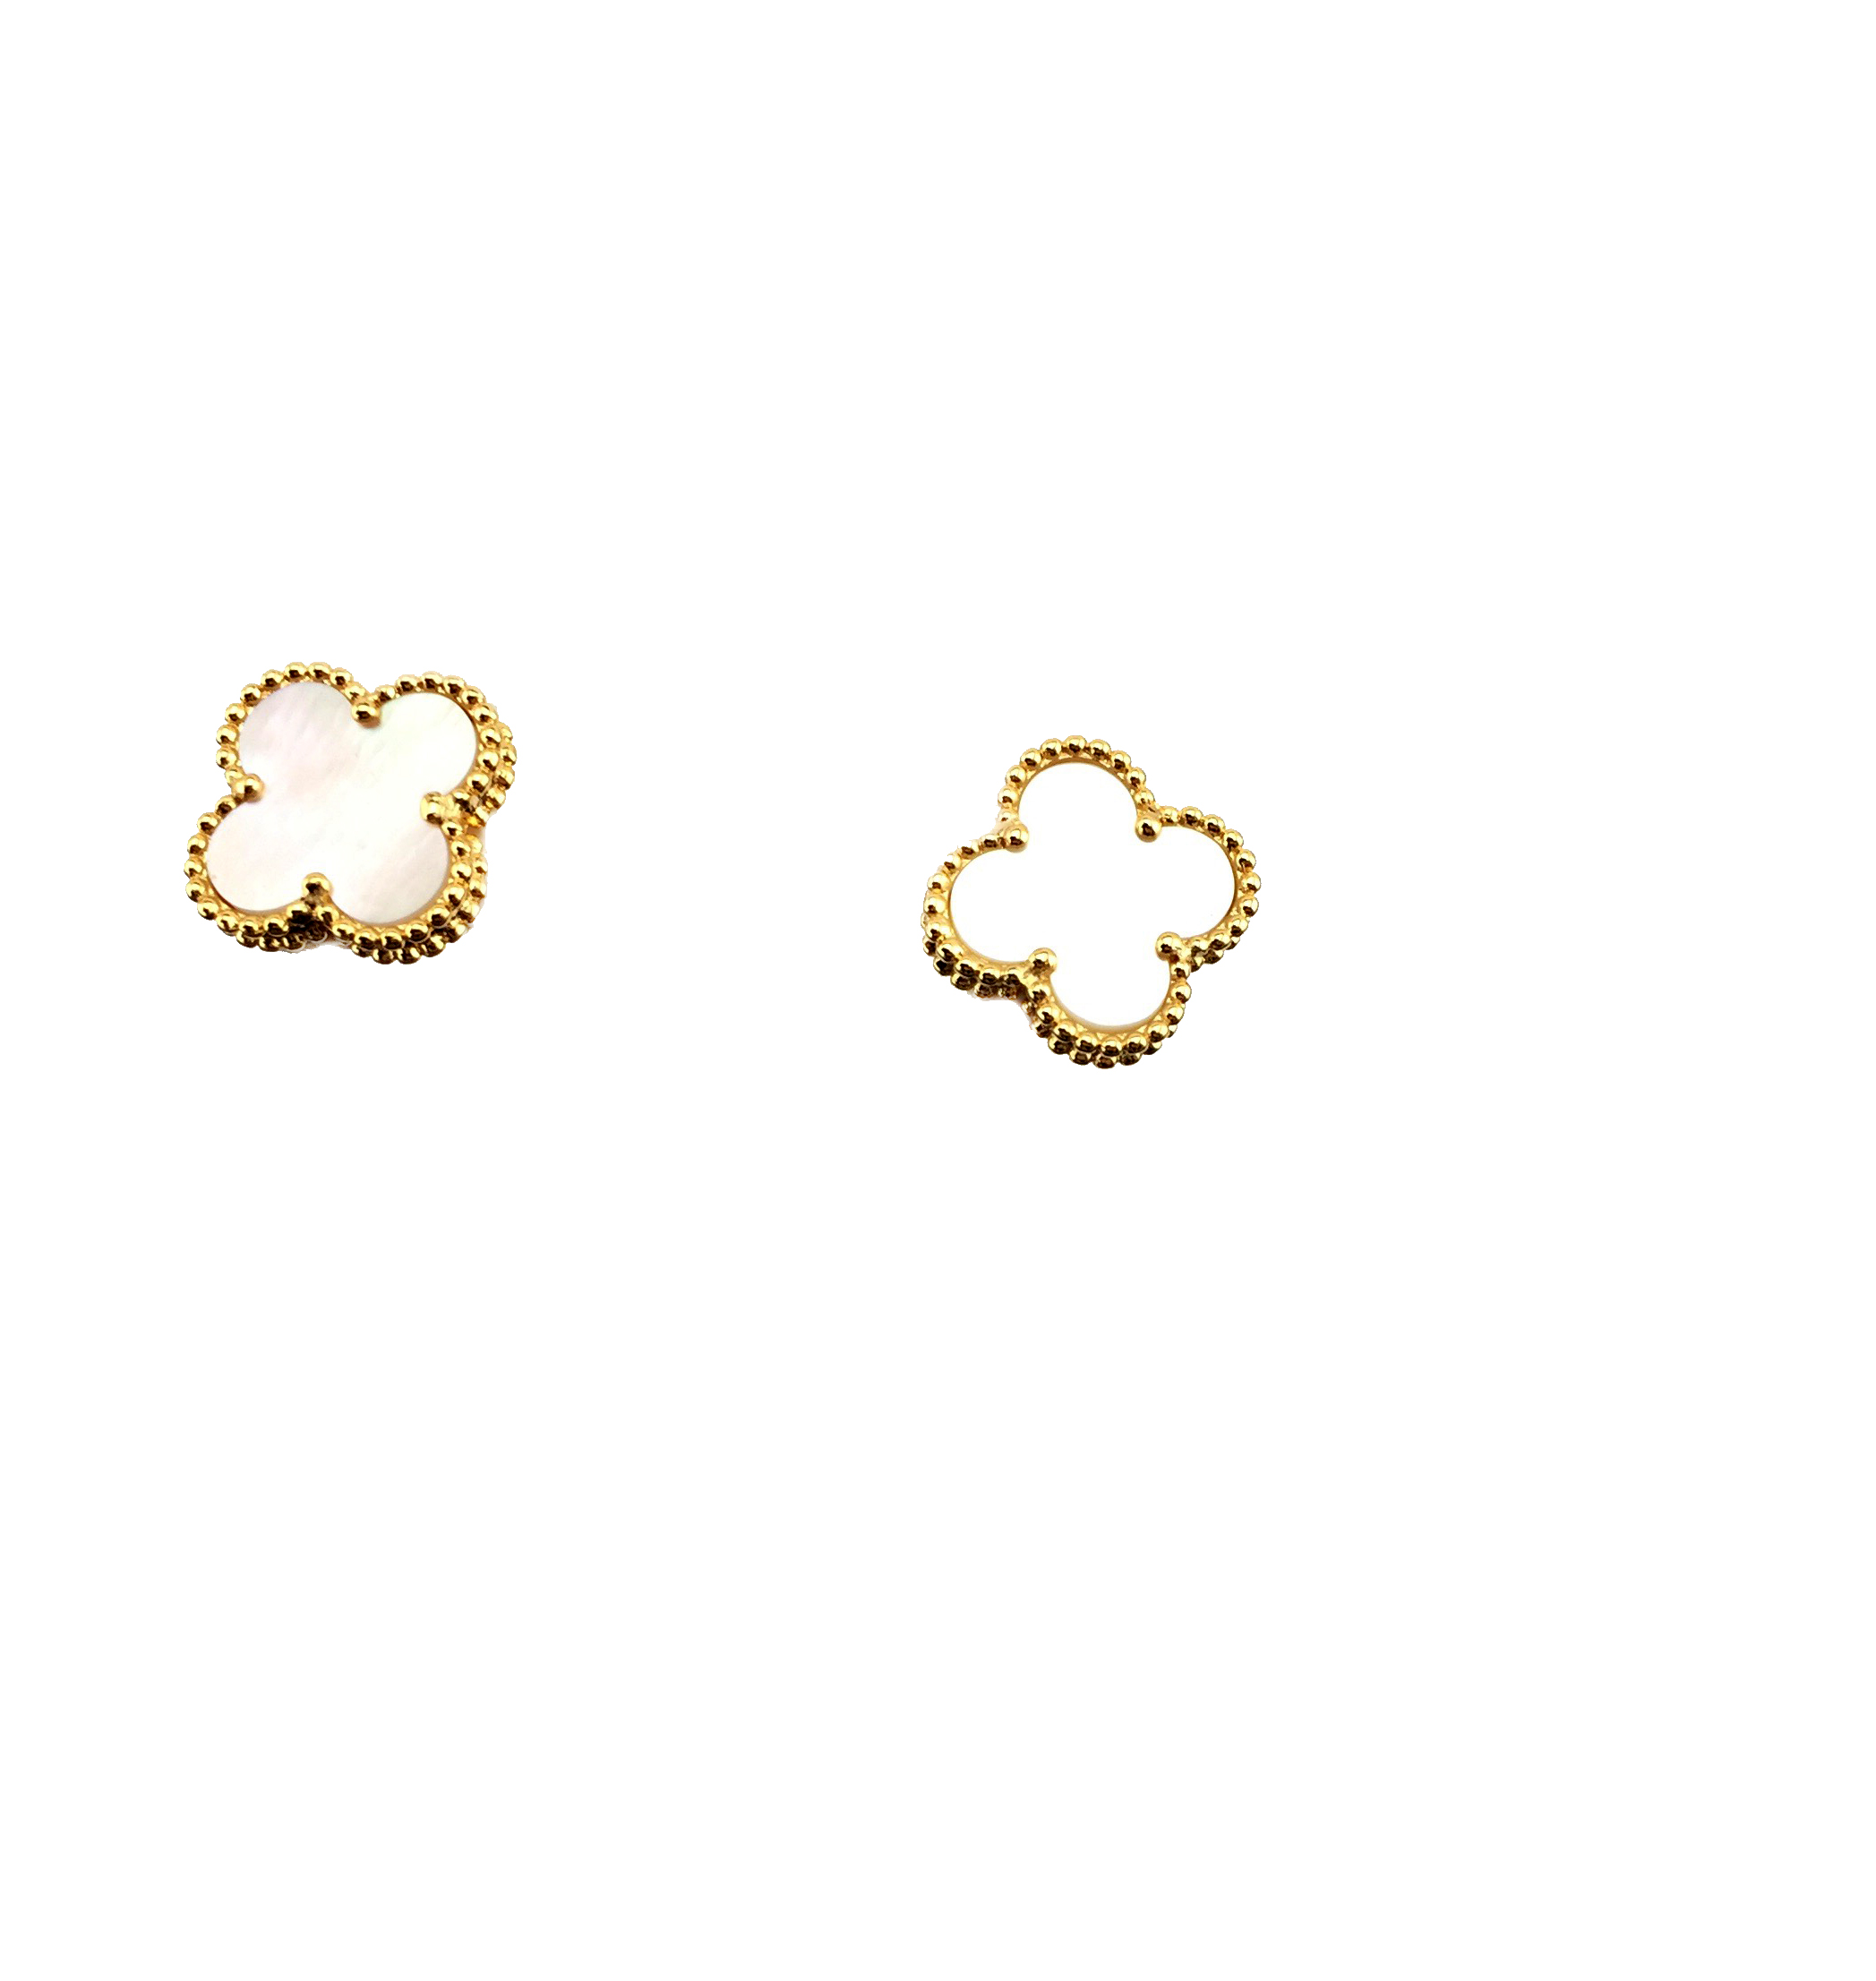 andrew product img fabrikant demerini earrings hoop gold white diamond